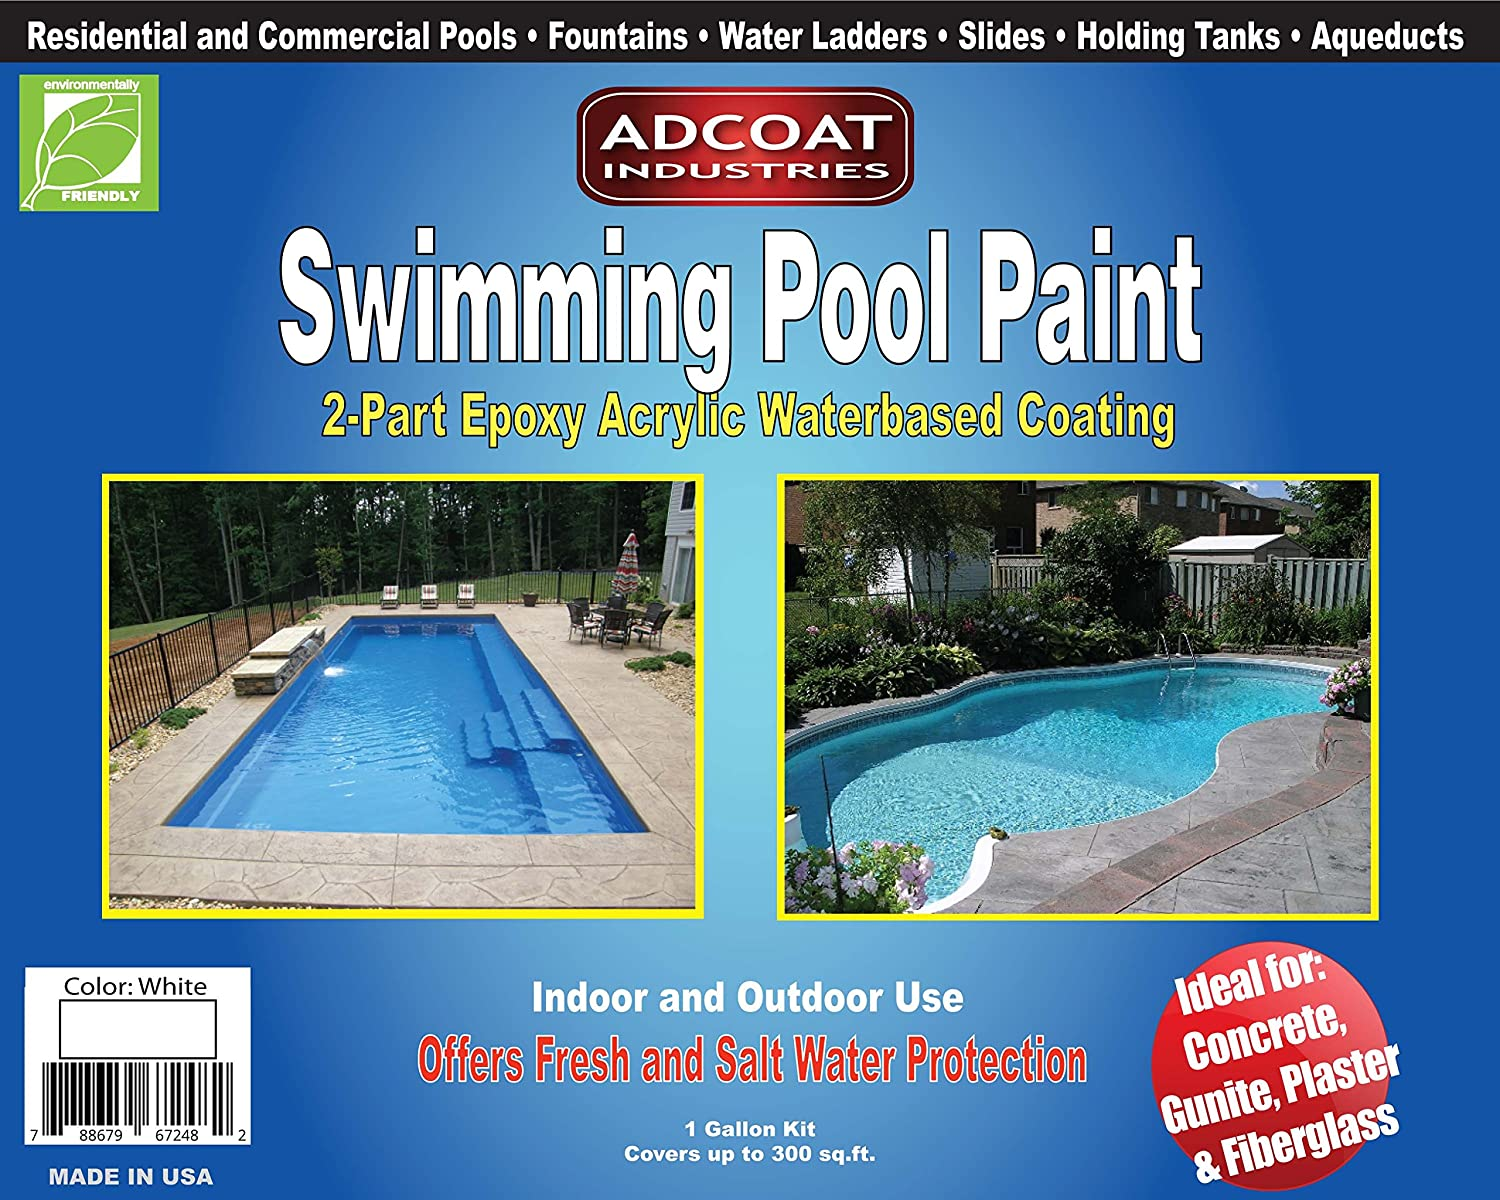 Amazon Com Adcoat Swimming Pool Paint 2 Part Epoxy Acrylic Waterbased Coating 1 Gallon Kit White Color Garden Outdoor